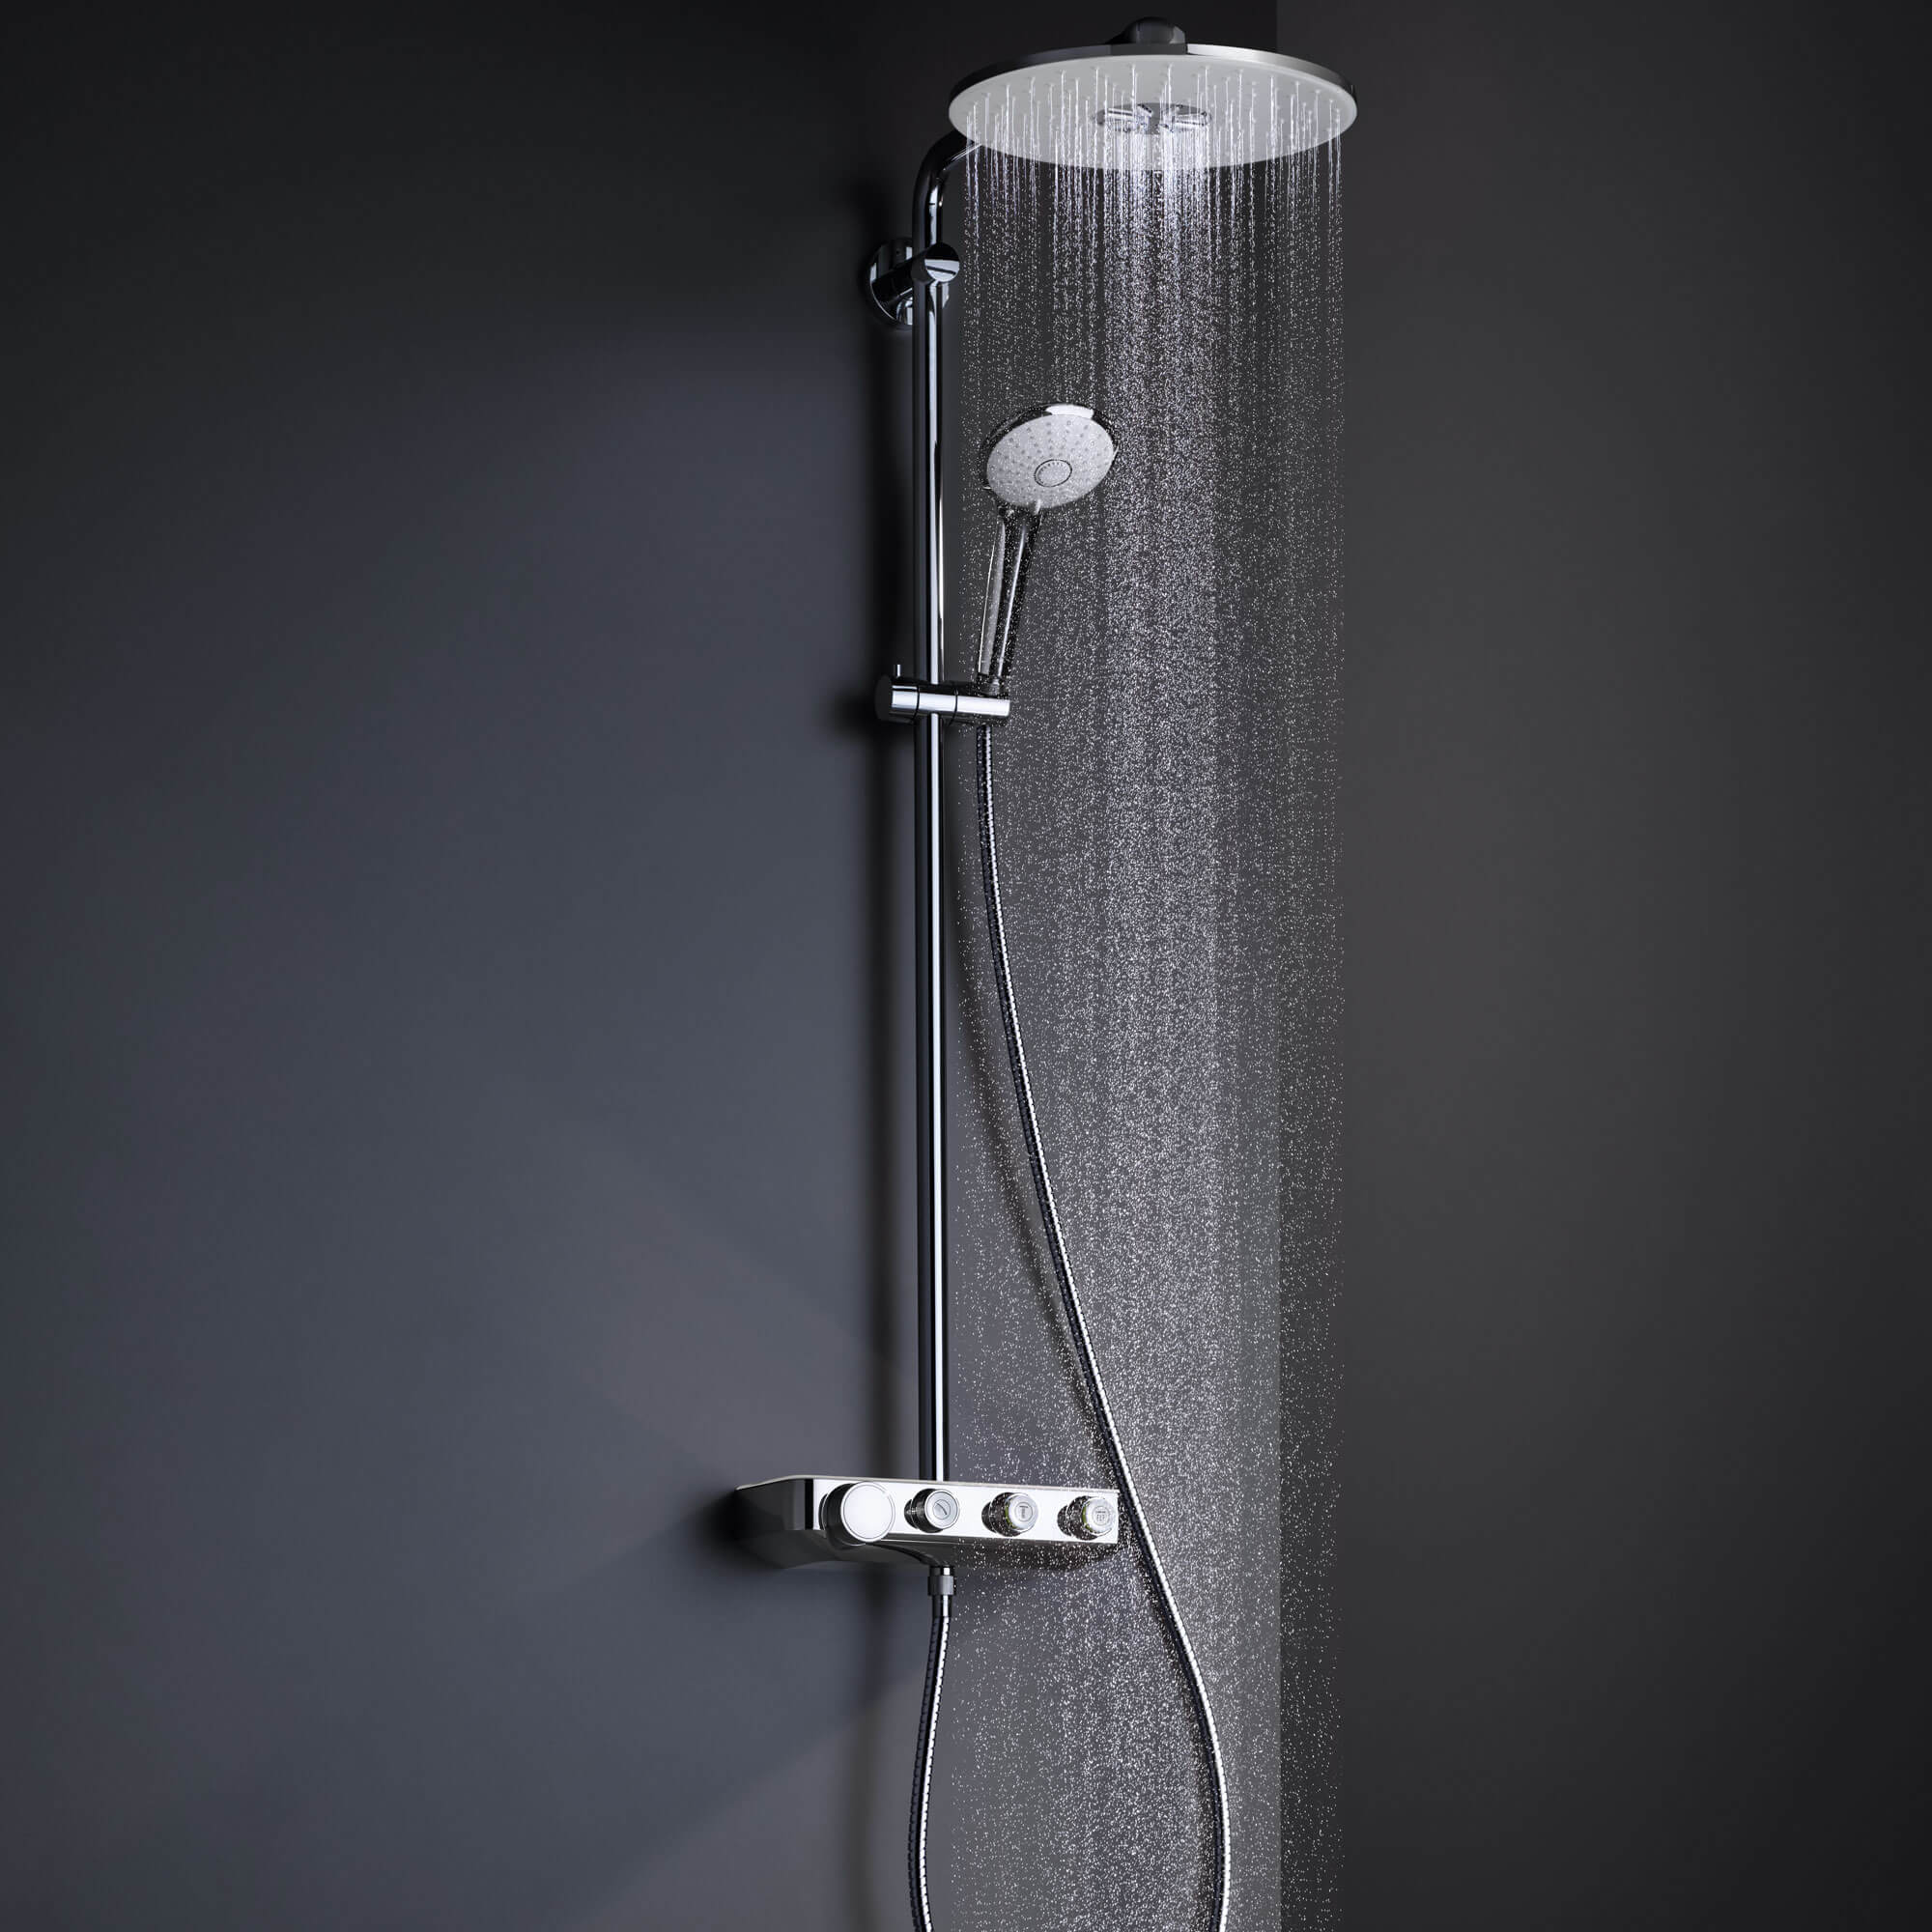 Euphoria SmartControl shower spraying water.